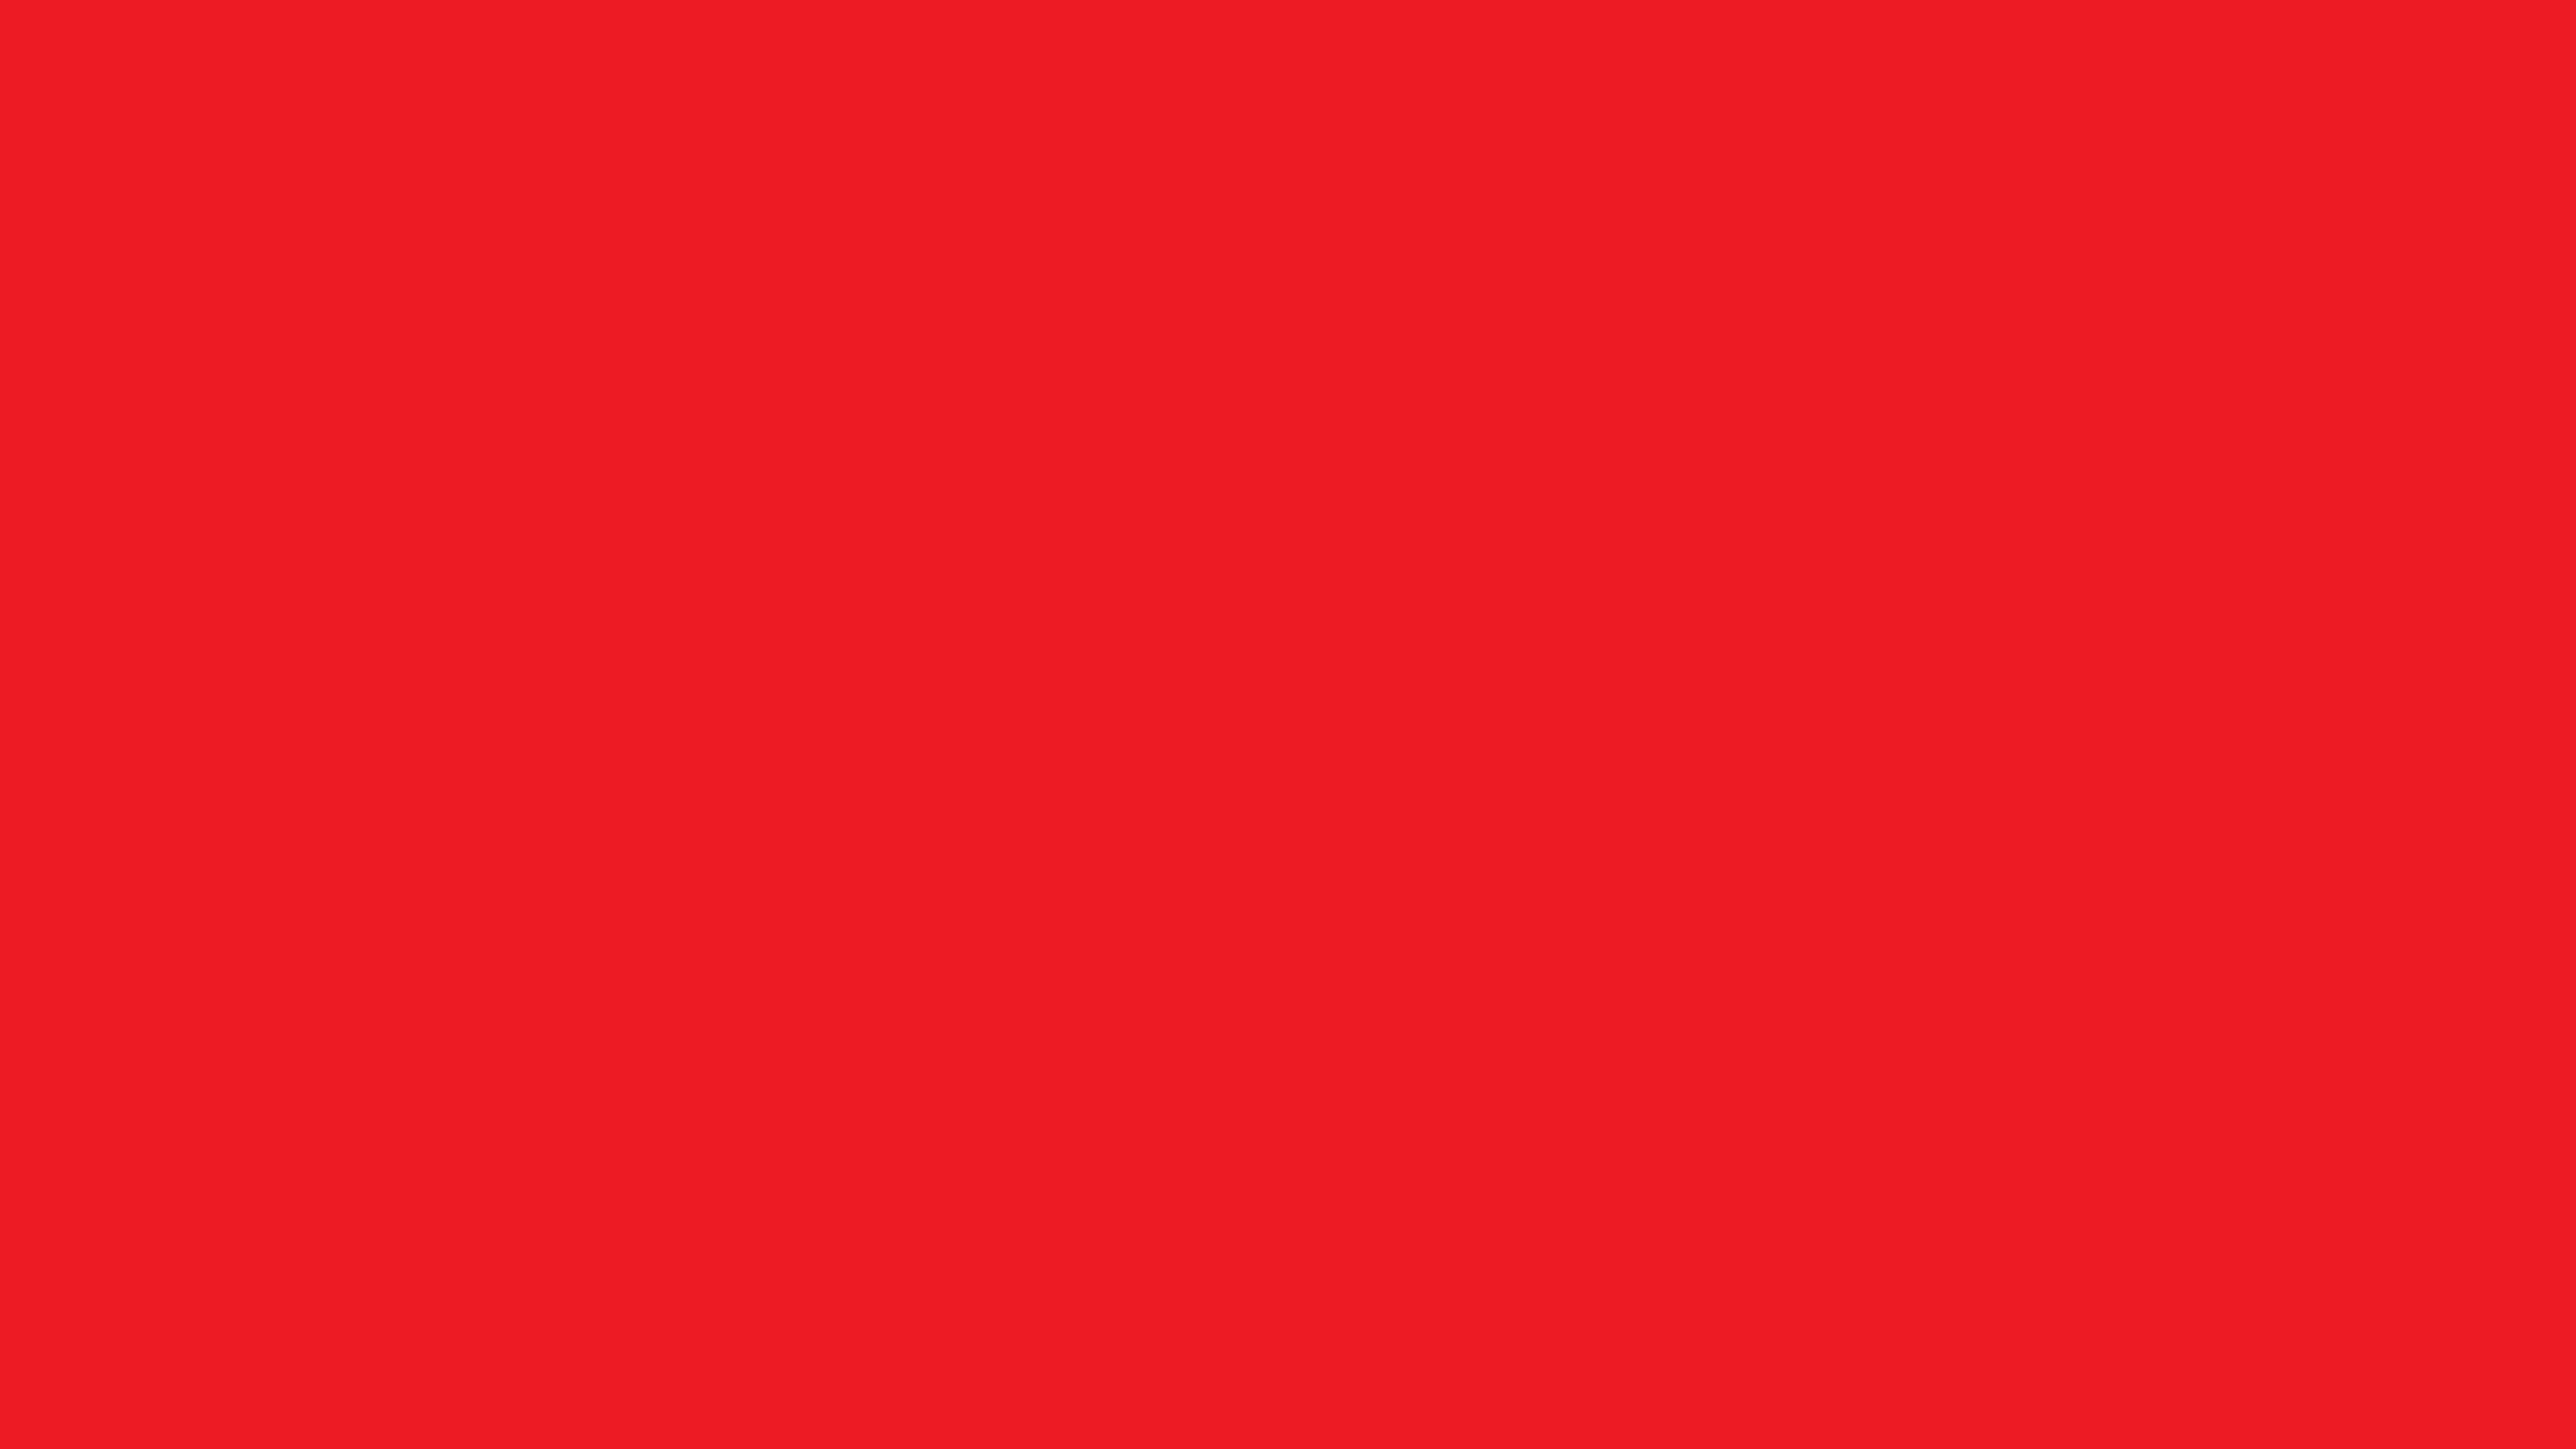 4096x2304 Red Pigment Solid Color Background